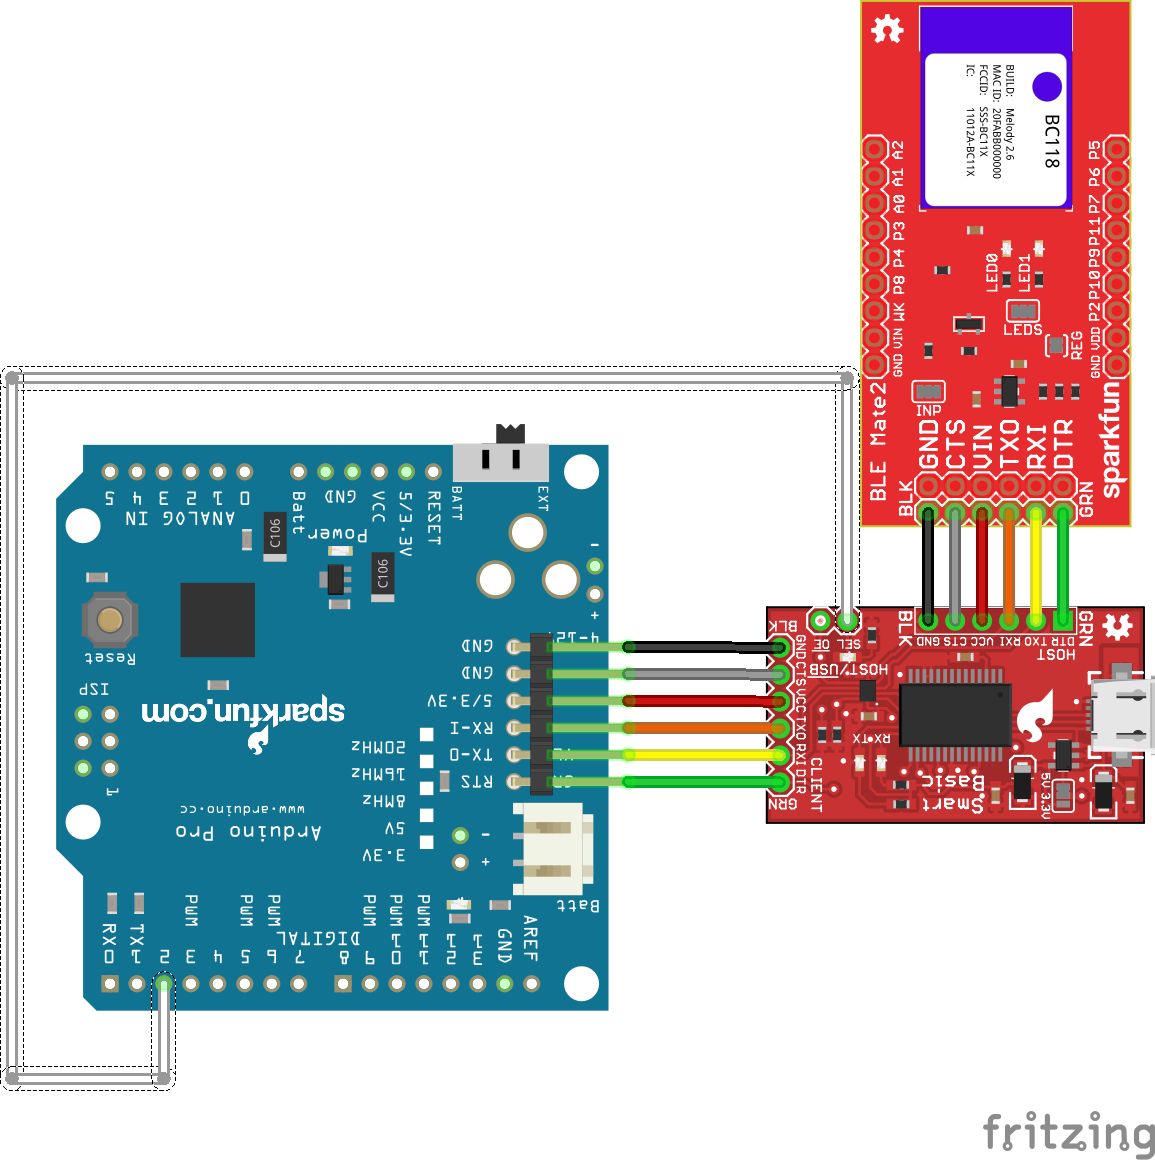 BC118 BLE Mate 2 Hookup Guide - learn sparkfun com